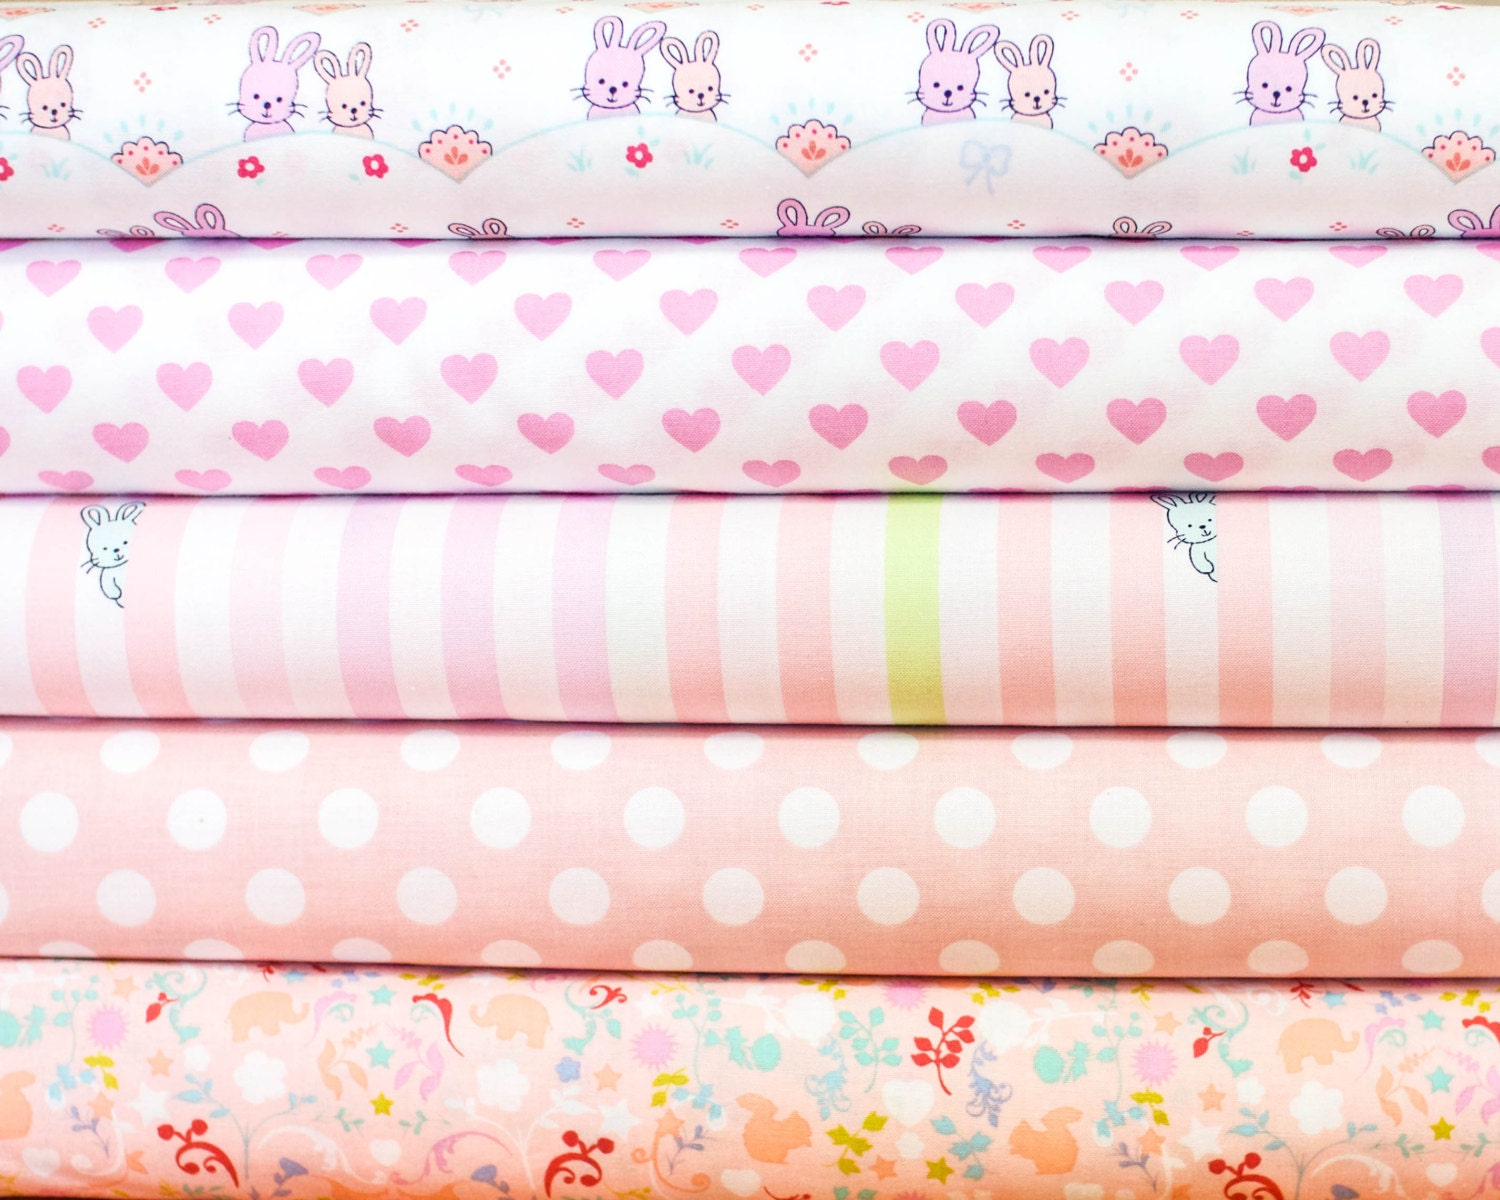 Girl fabrics have a contemporary style and cozy comfort fit for a Princess, our fabric offerings for girls capture the essence of sugar and spice and everything nice.